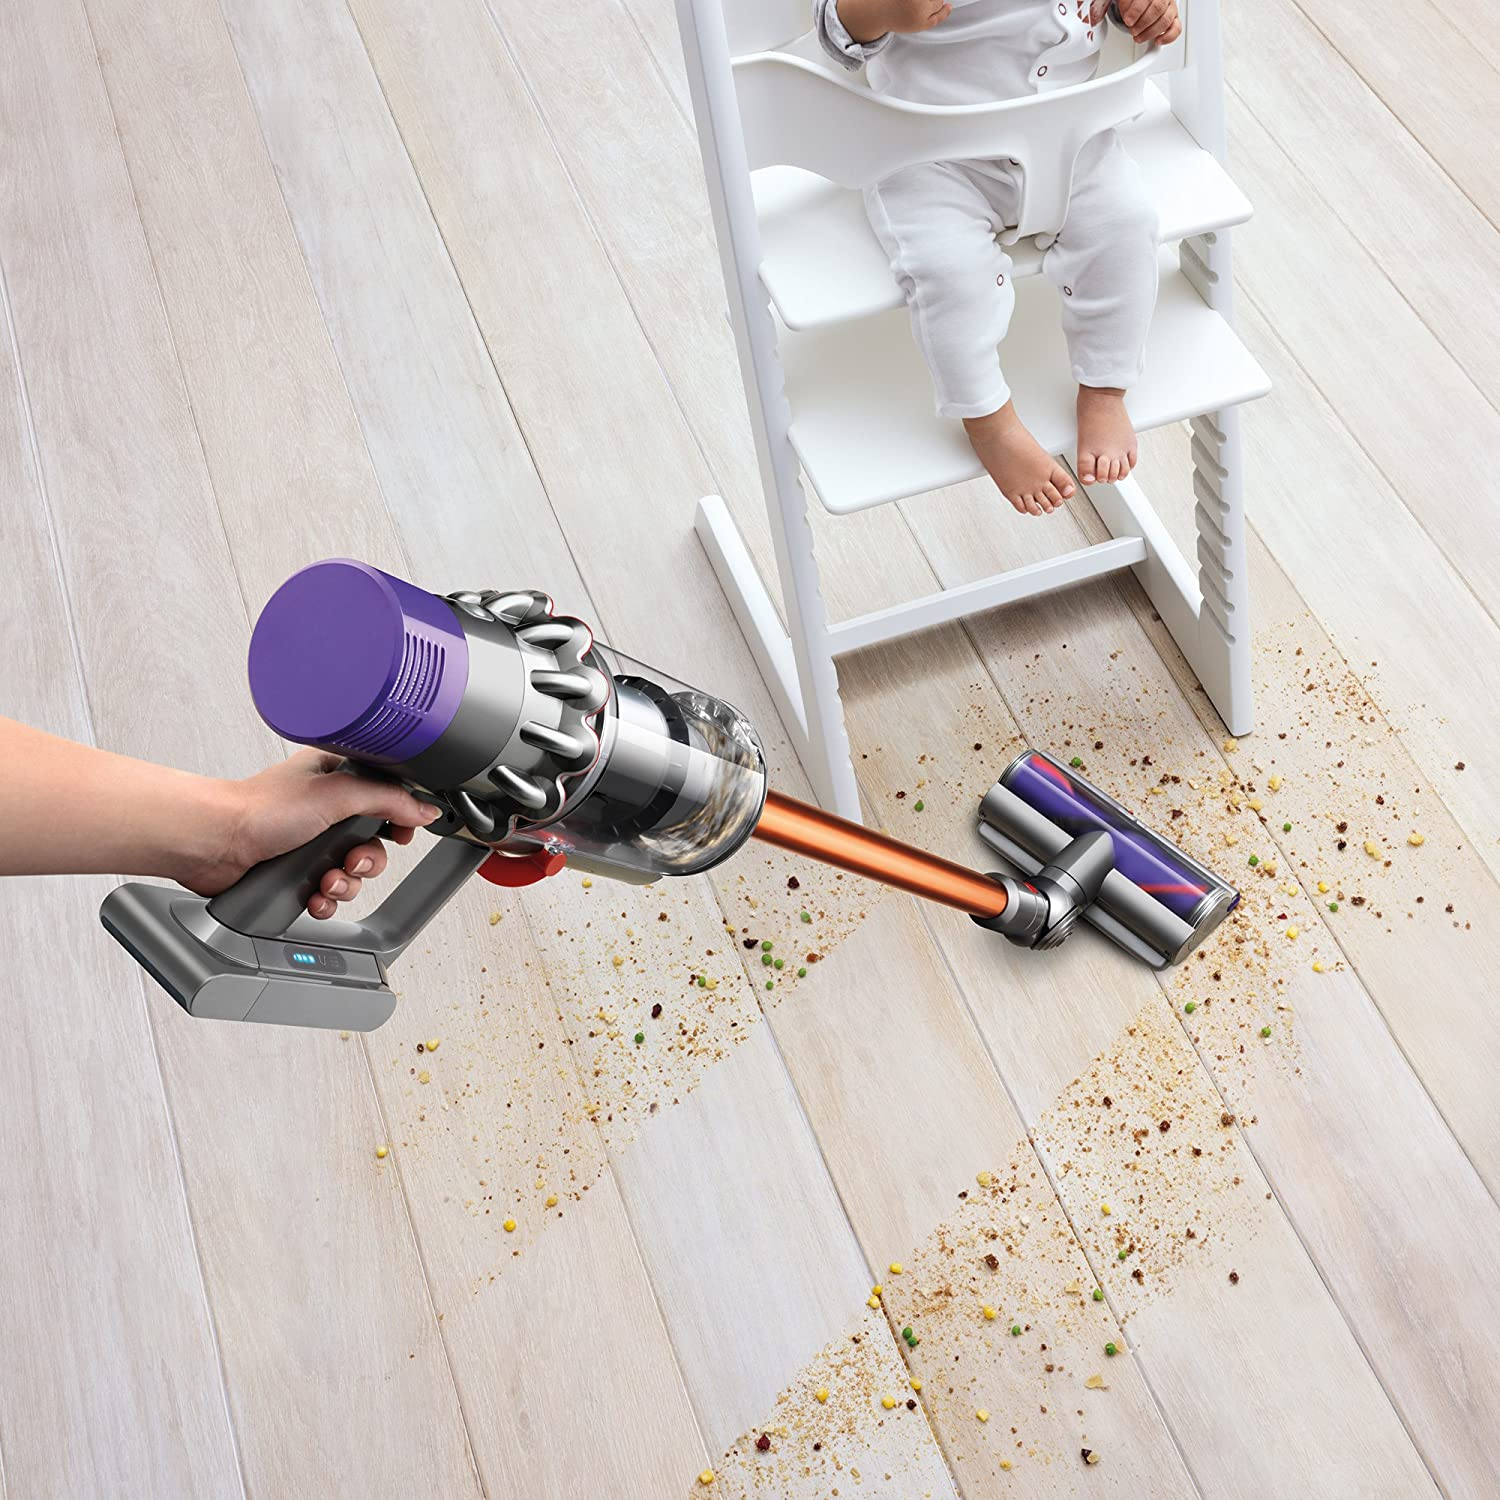 dyson vacuum cleaning up mess